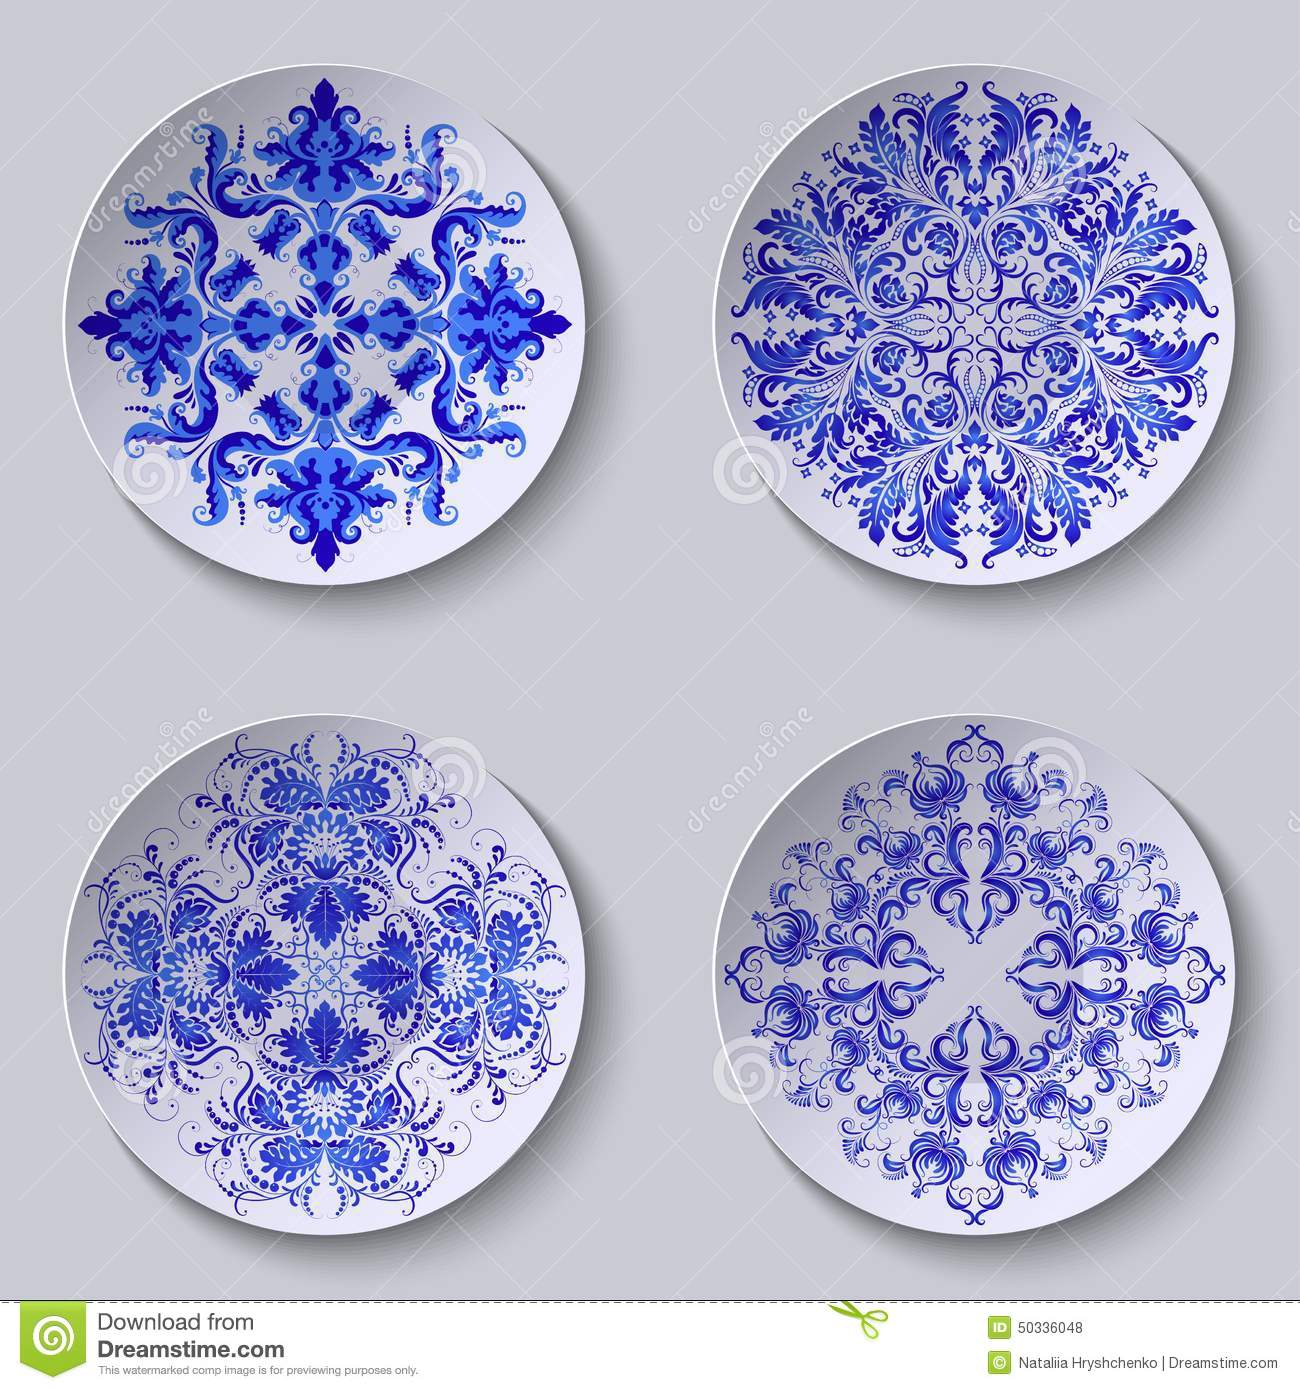 Set of floral circular plates  sc 1 st  Dreamstime.com & Set Of Floral Circular Plates Stock Vector - Illustration of blue ...